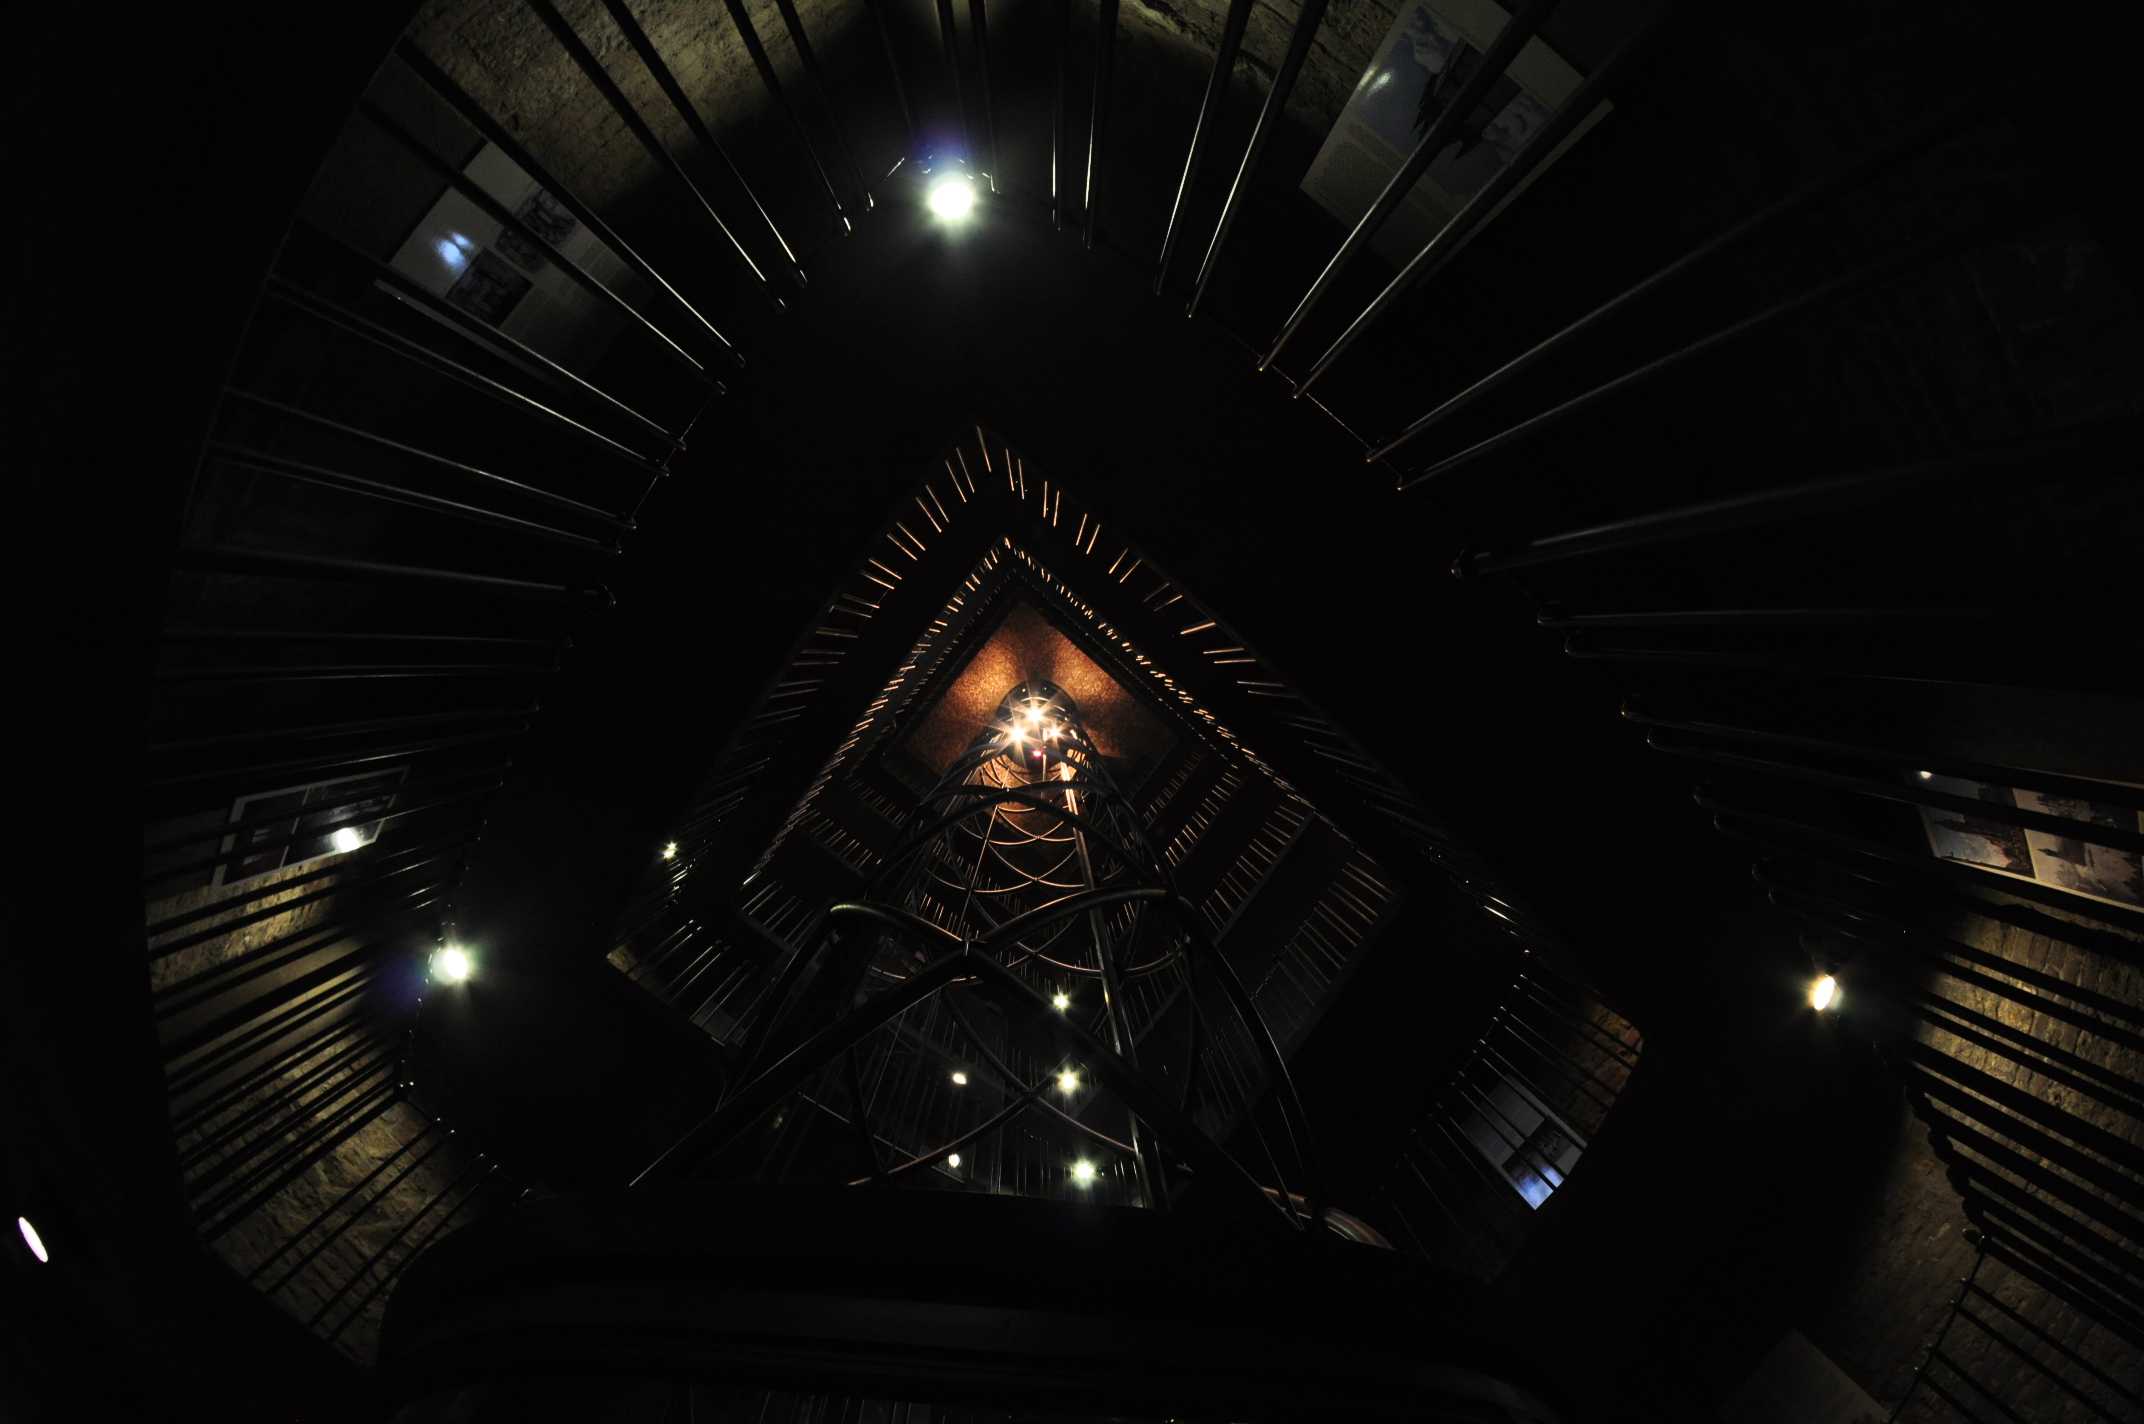 Spectacular elevator in Pragues old townhall  cc0photo